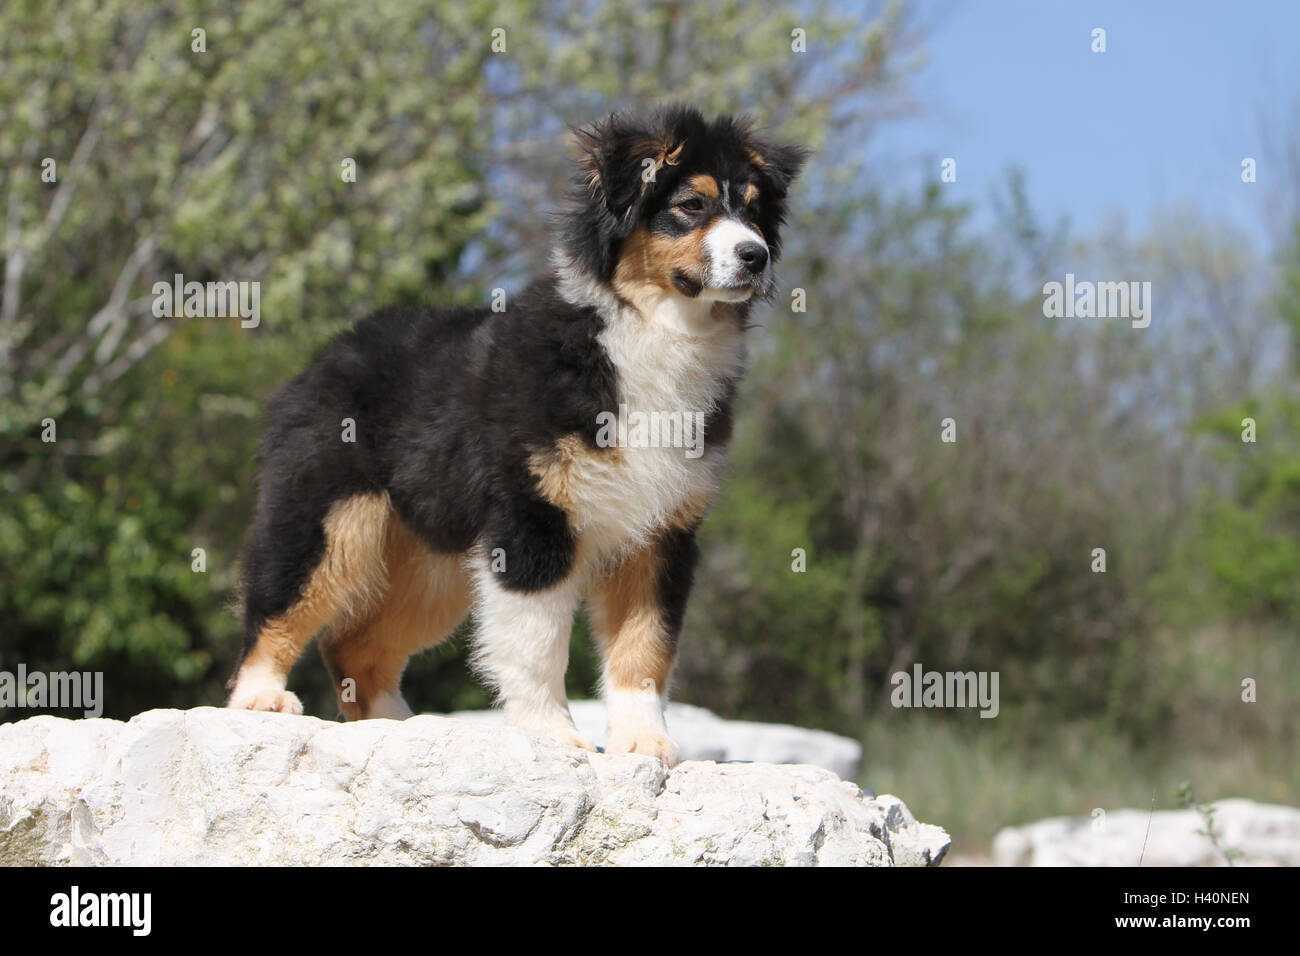 Dog Australian Shepherd Aussie Puppy Black Tricolor Standing Stock Photo Alamy